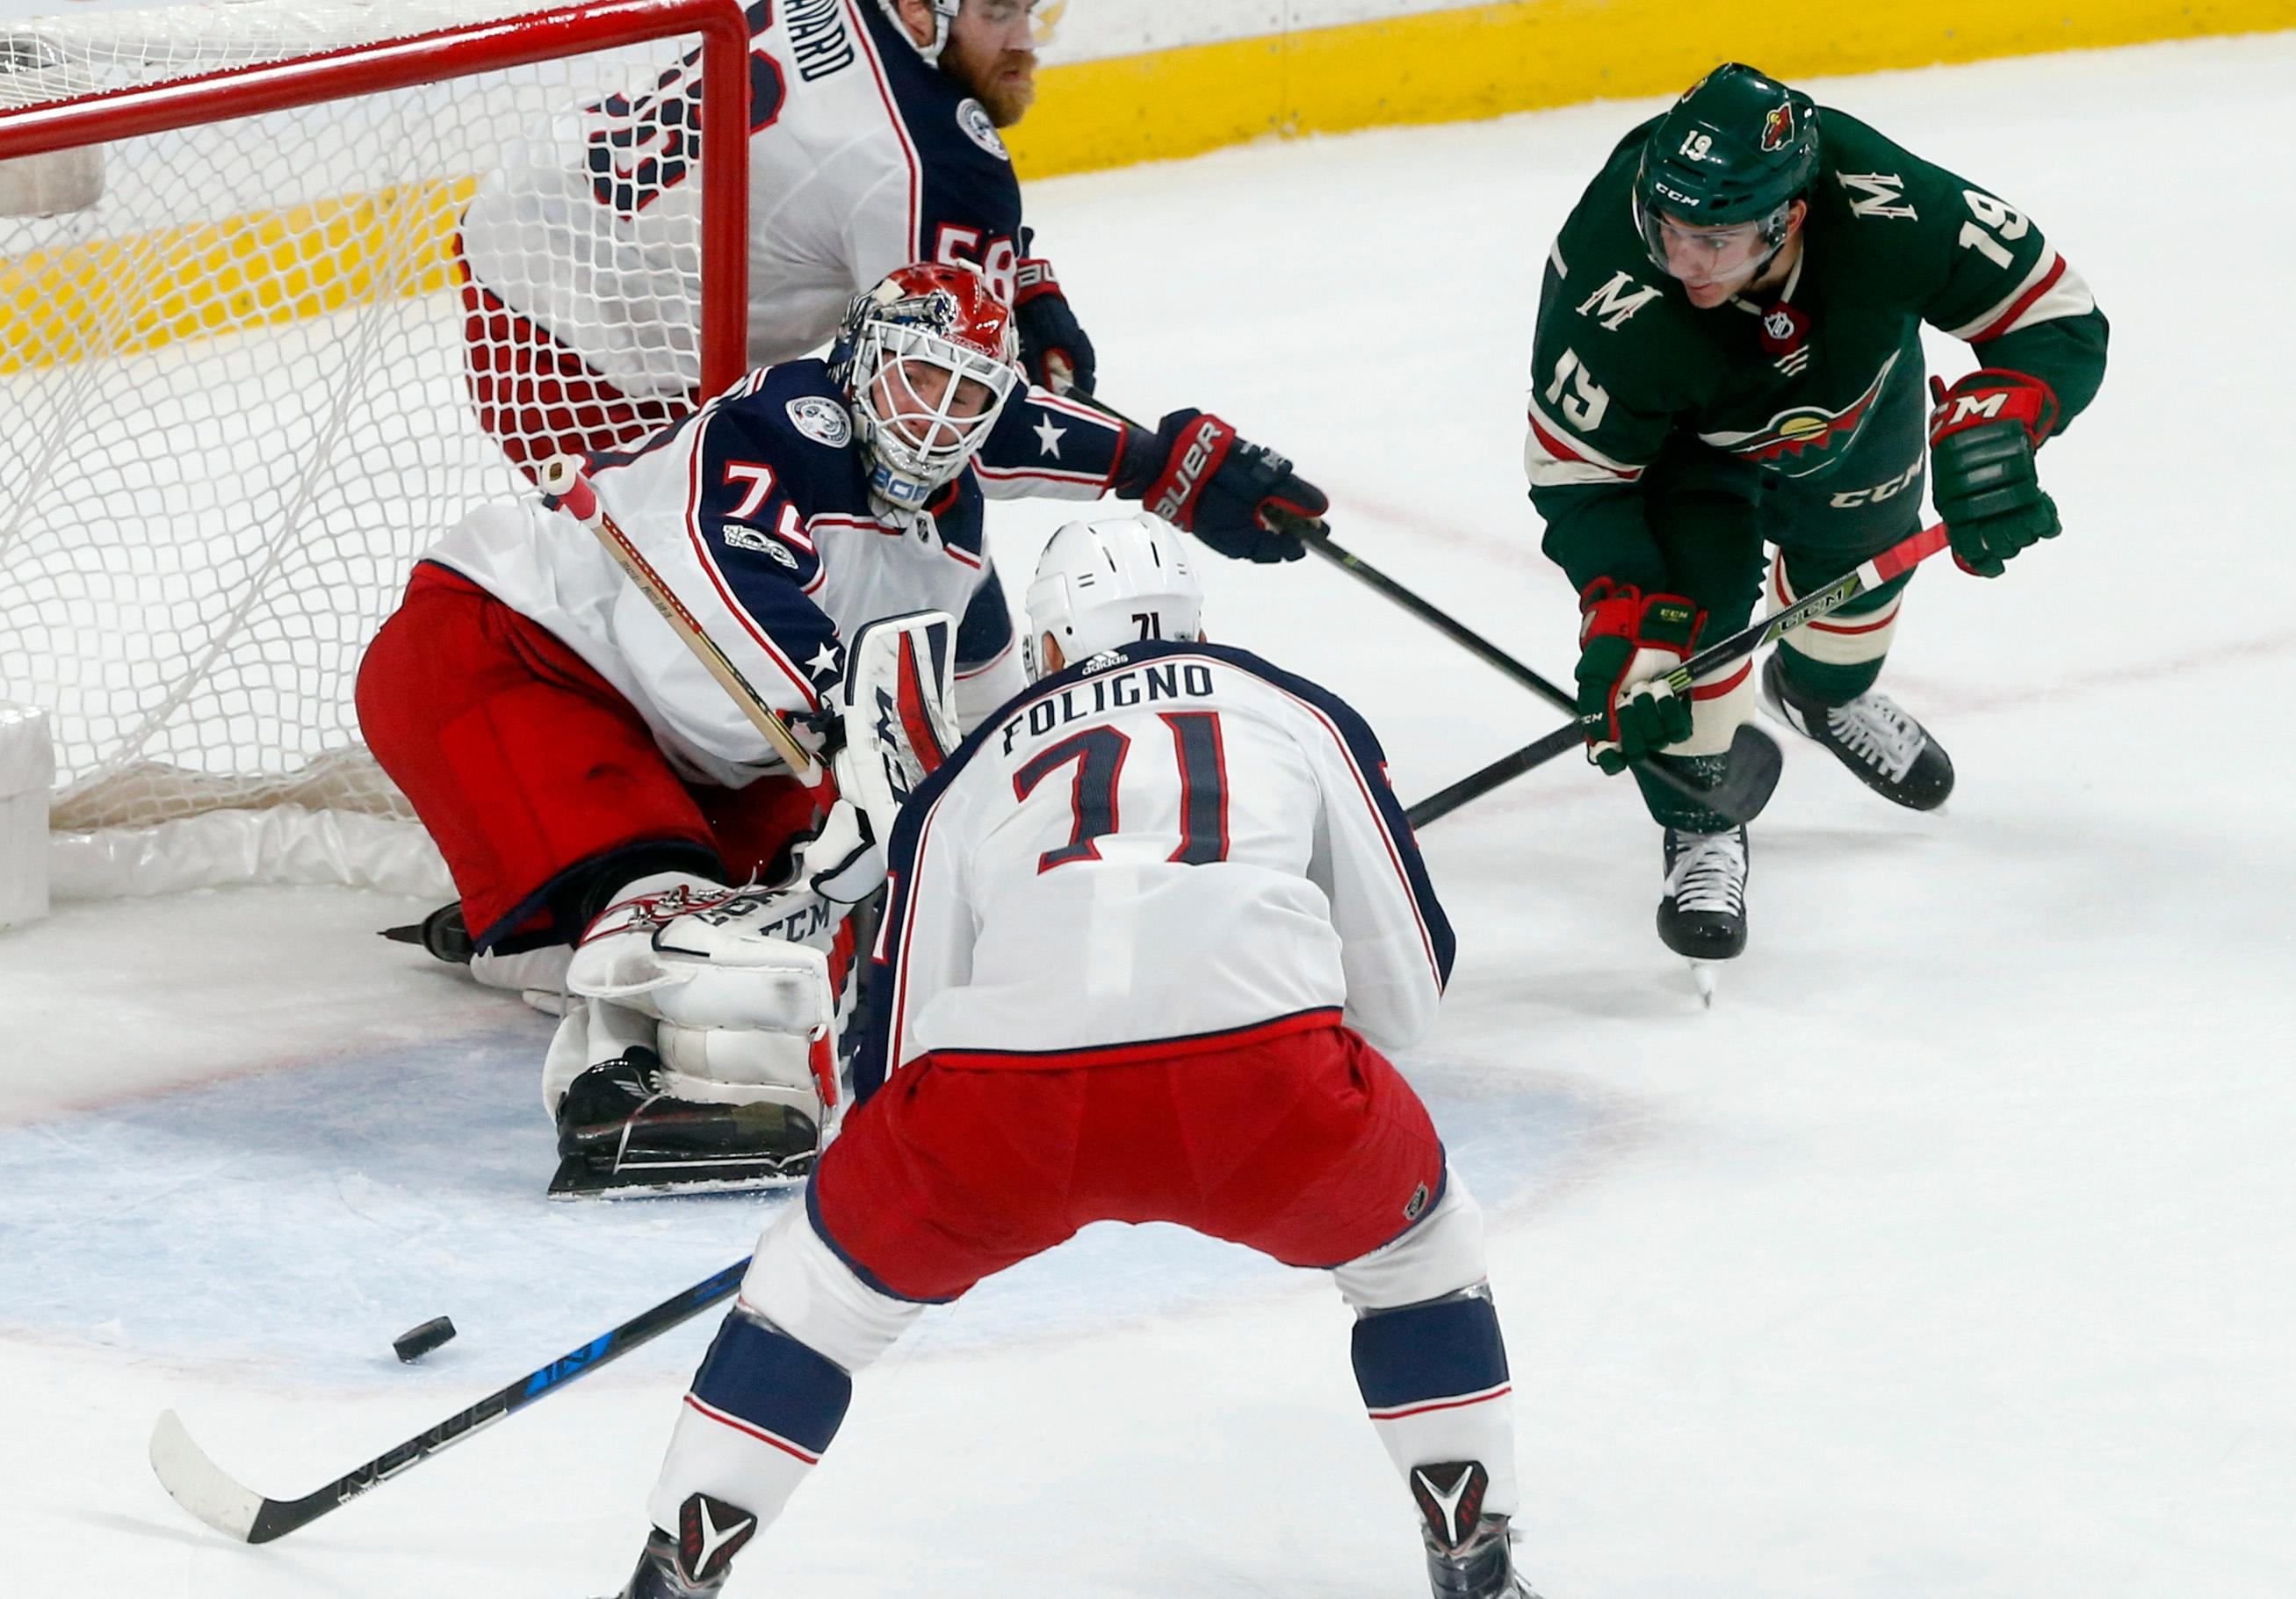 Columbus Blue Jackets goalie Sergei Bobrovsky, left, of Russia, stops a shot as Minnesota Wild's Luke Kunin, right, looked for a rebound during the first period of an NHL hockey game Saturday, Oct. 14, 2017, in St. Paul, Minn. (AP Photo/Jim Mone)